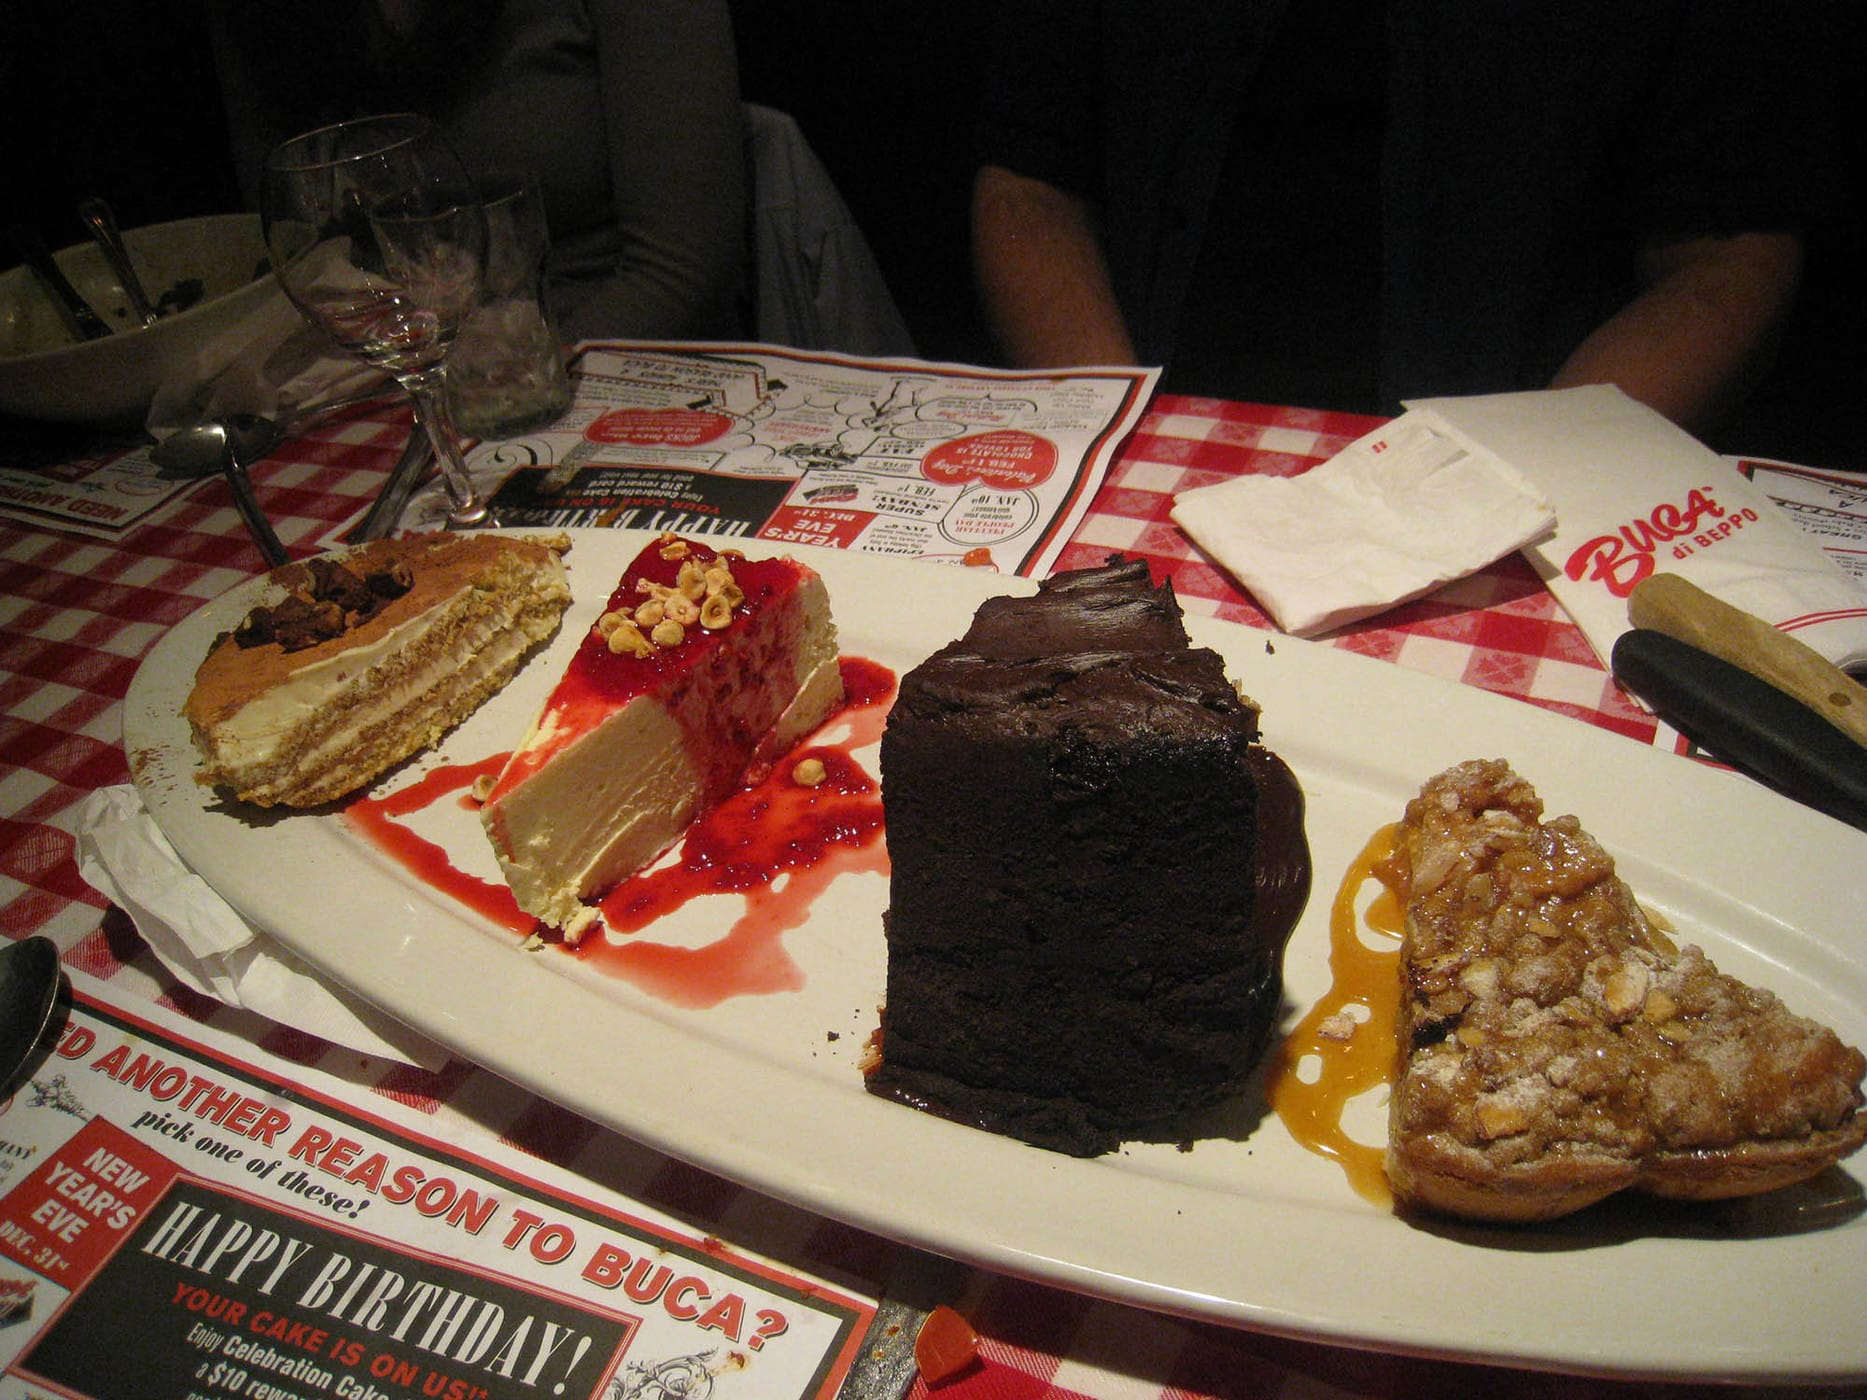 Dessert platter of Tiramisu, Double Dark Chocolate Cake, Homemade Cheesecake, and Apple Crostata at Bucca di Beppo